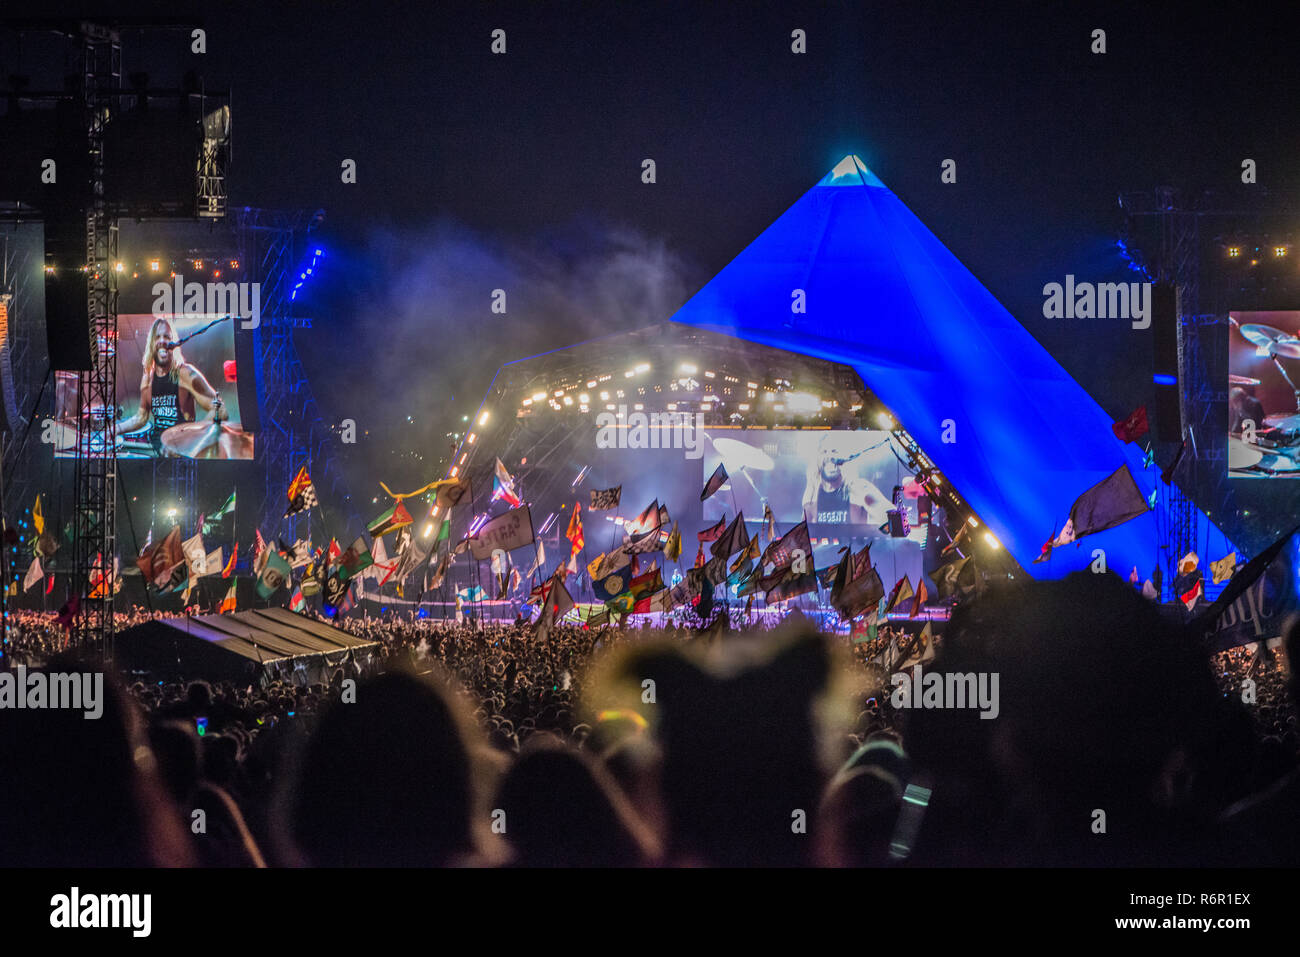 Foo Fighters Perform at The Glastonbury Festival 22.6.2017 - Stock Image